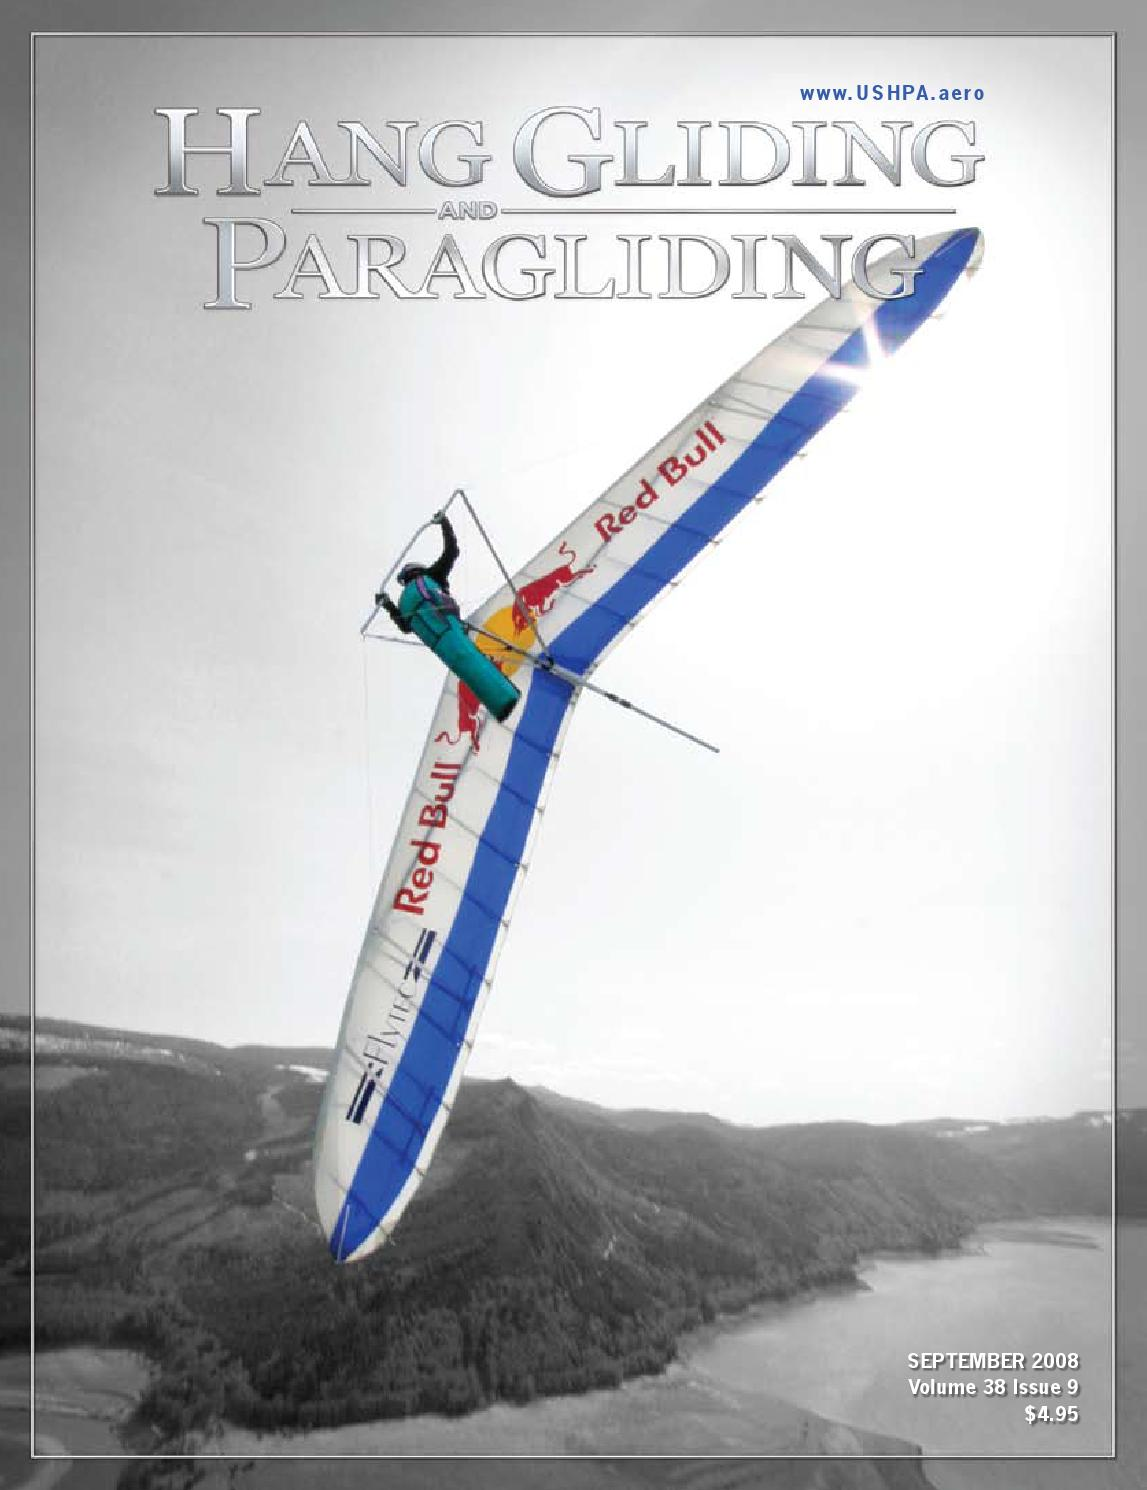 Hang Gliding   Paragliding Vol38 Iss09 Sep 2008 by US Hang Gliding    Paragliding Association - issuu 5216168b8ba1a